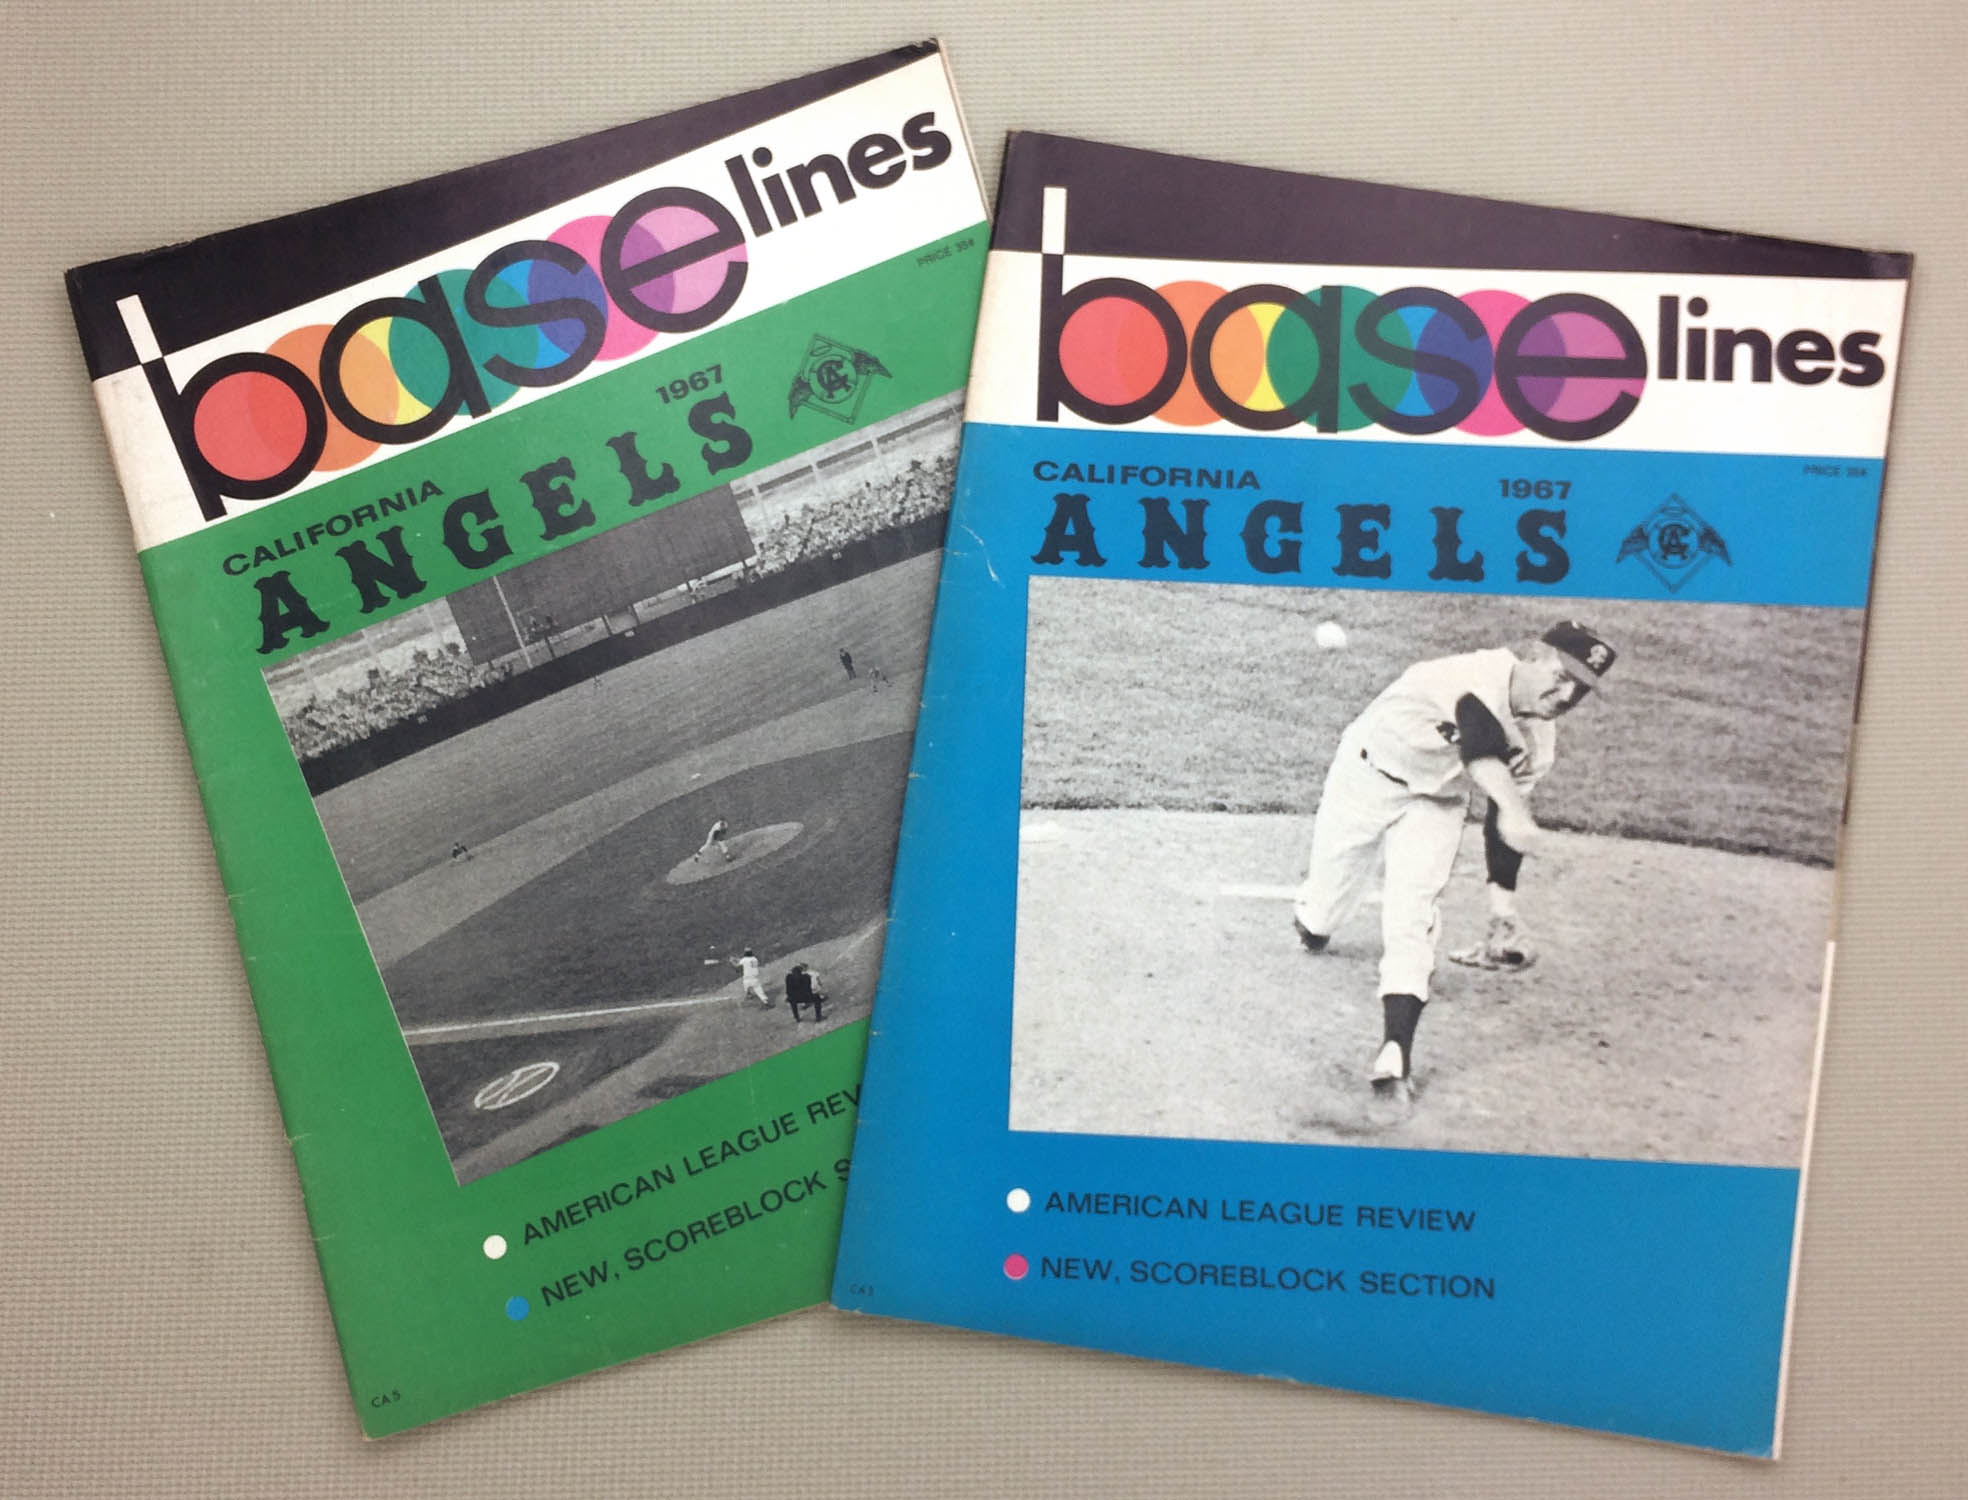 Angels 1967 Base-lines Programs